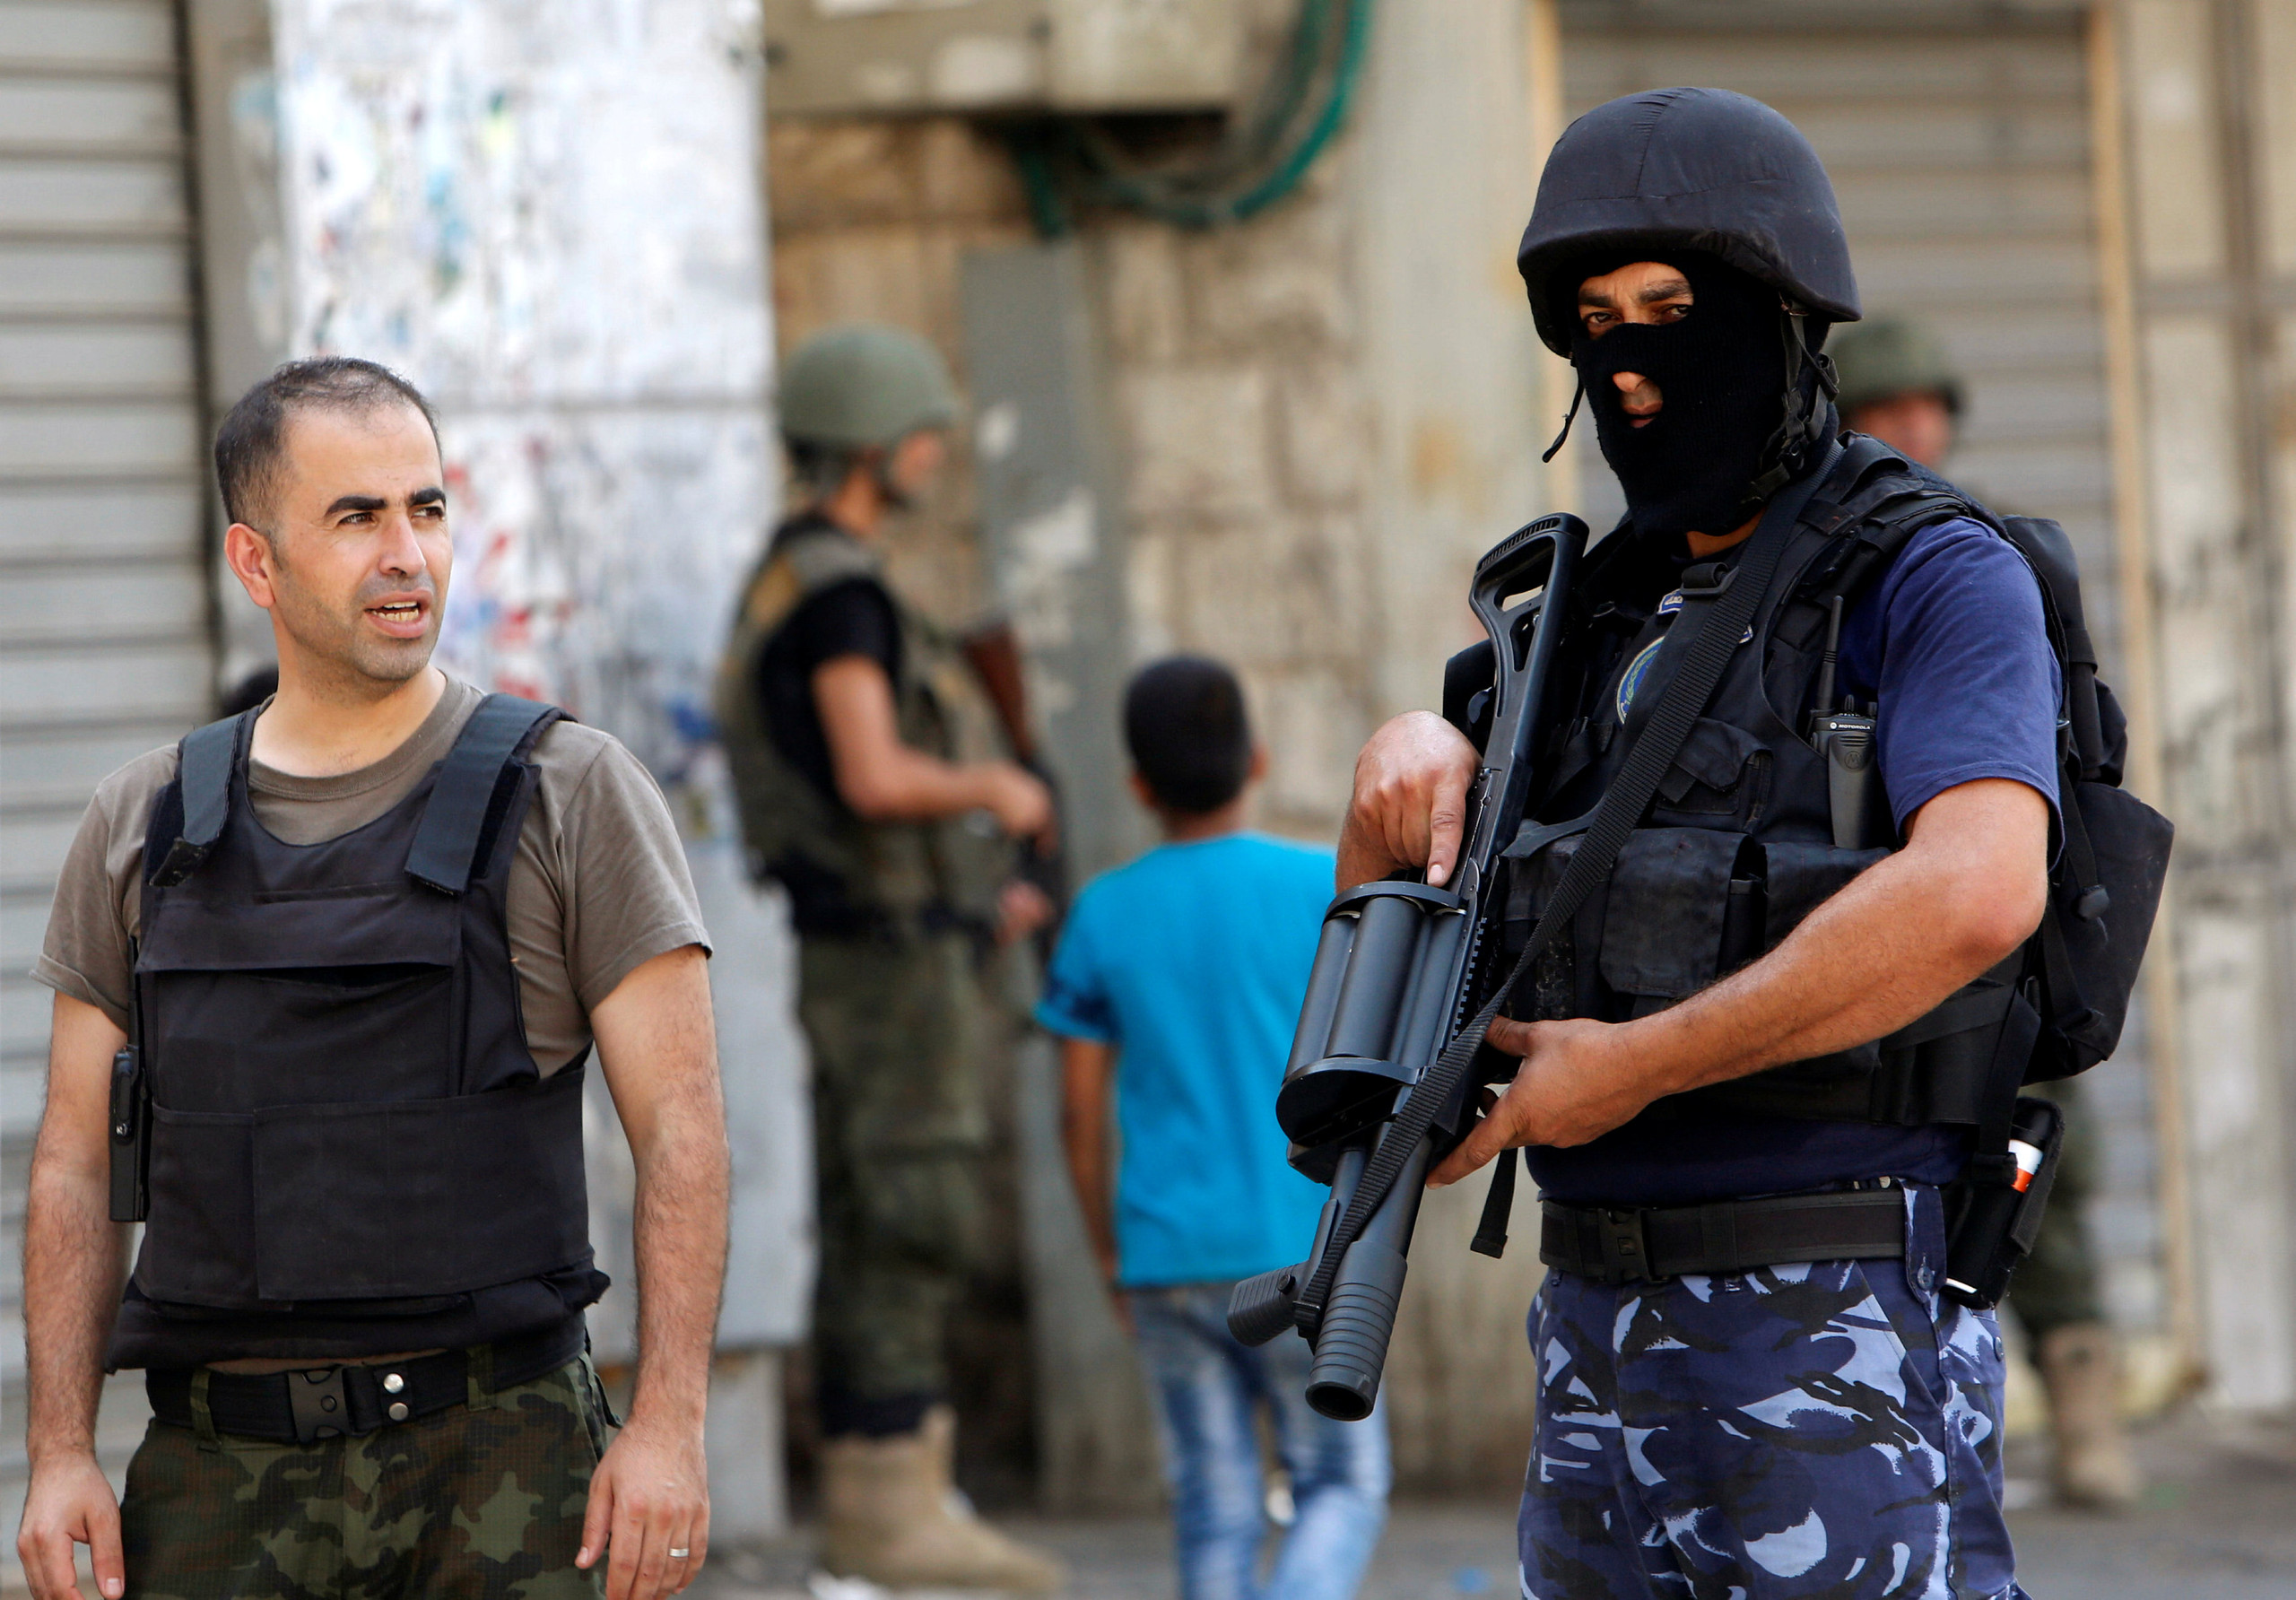 Members of Palestinian security forces take position following clashes with Palestinian youths in the old town of the West Bank city of Nablus August 23, 2016. REUTERS/Abed Omar Qusini